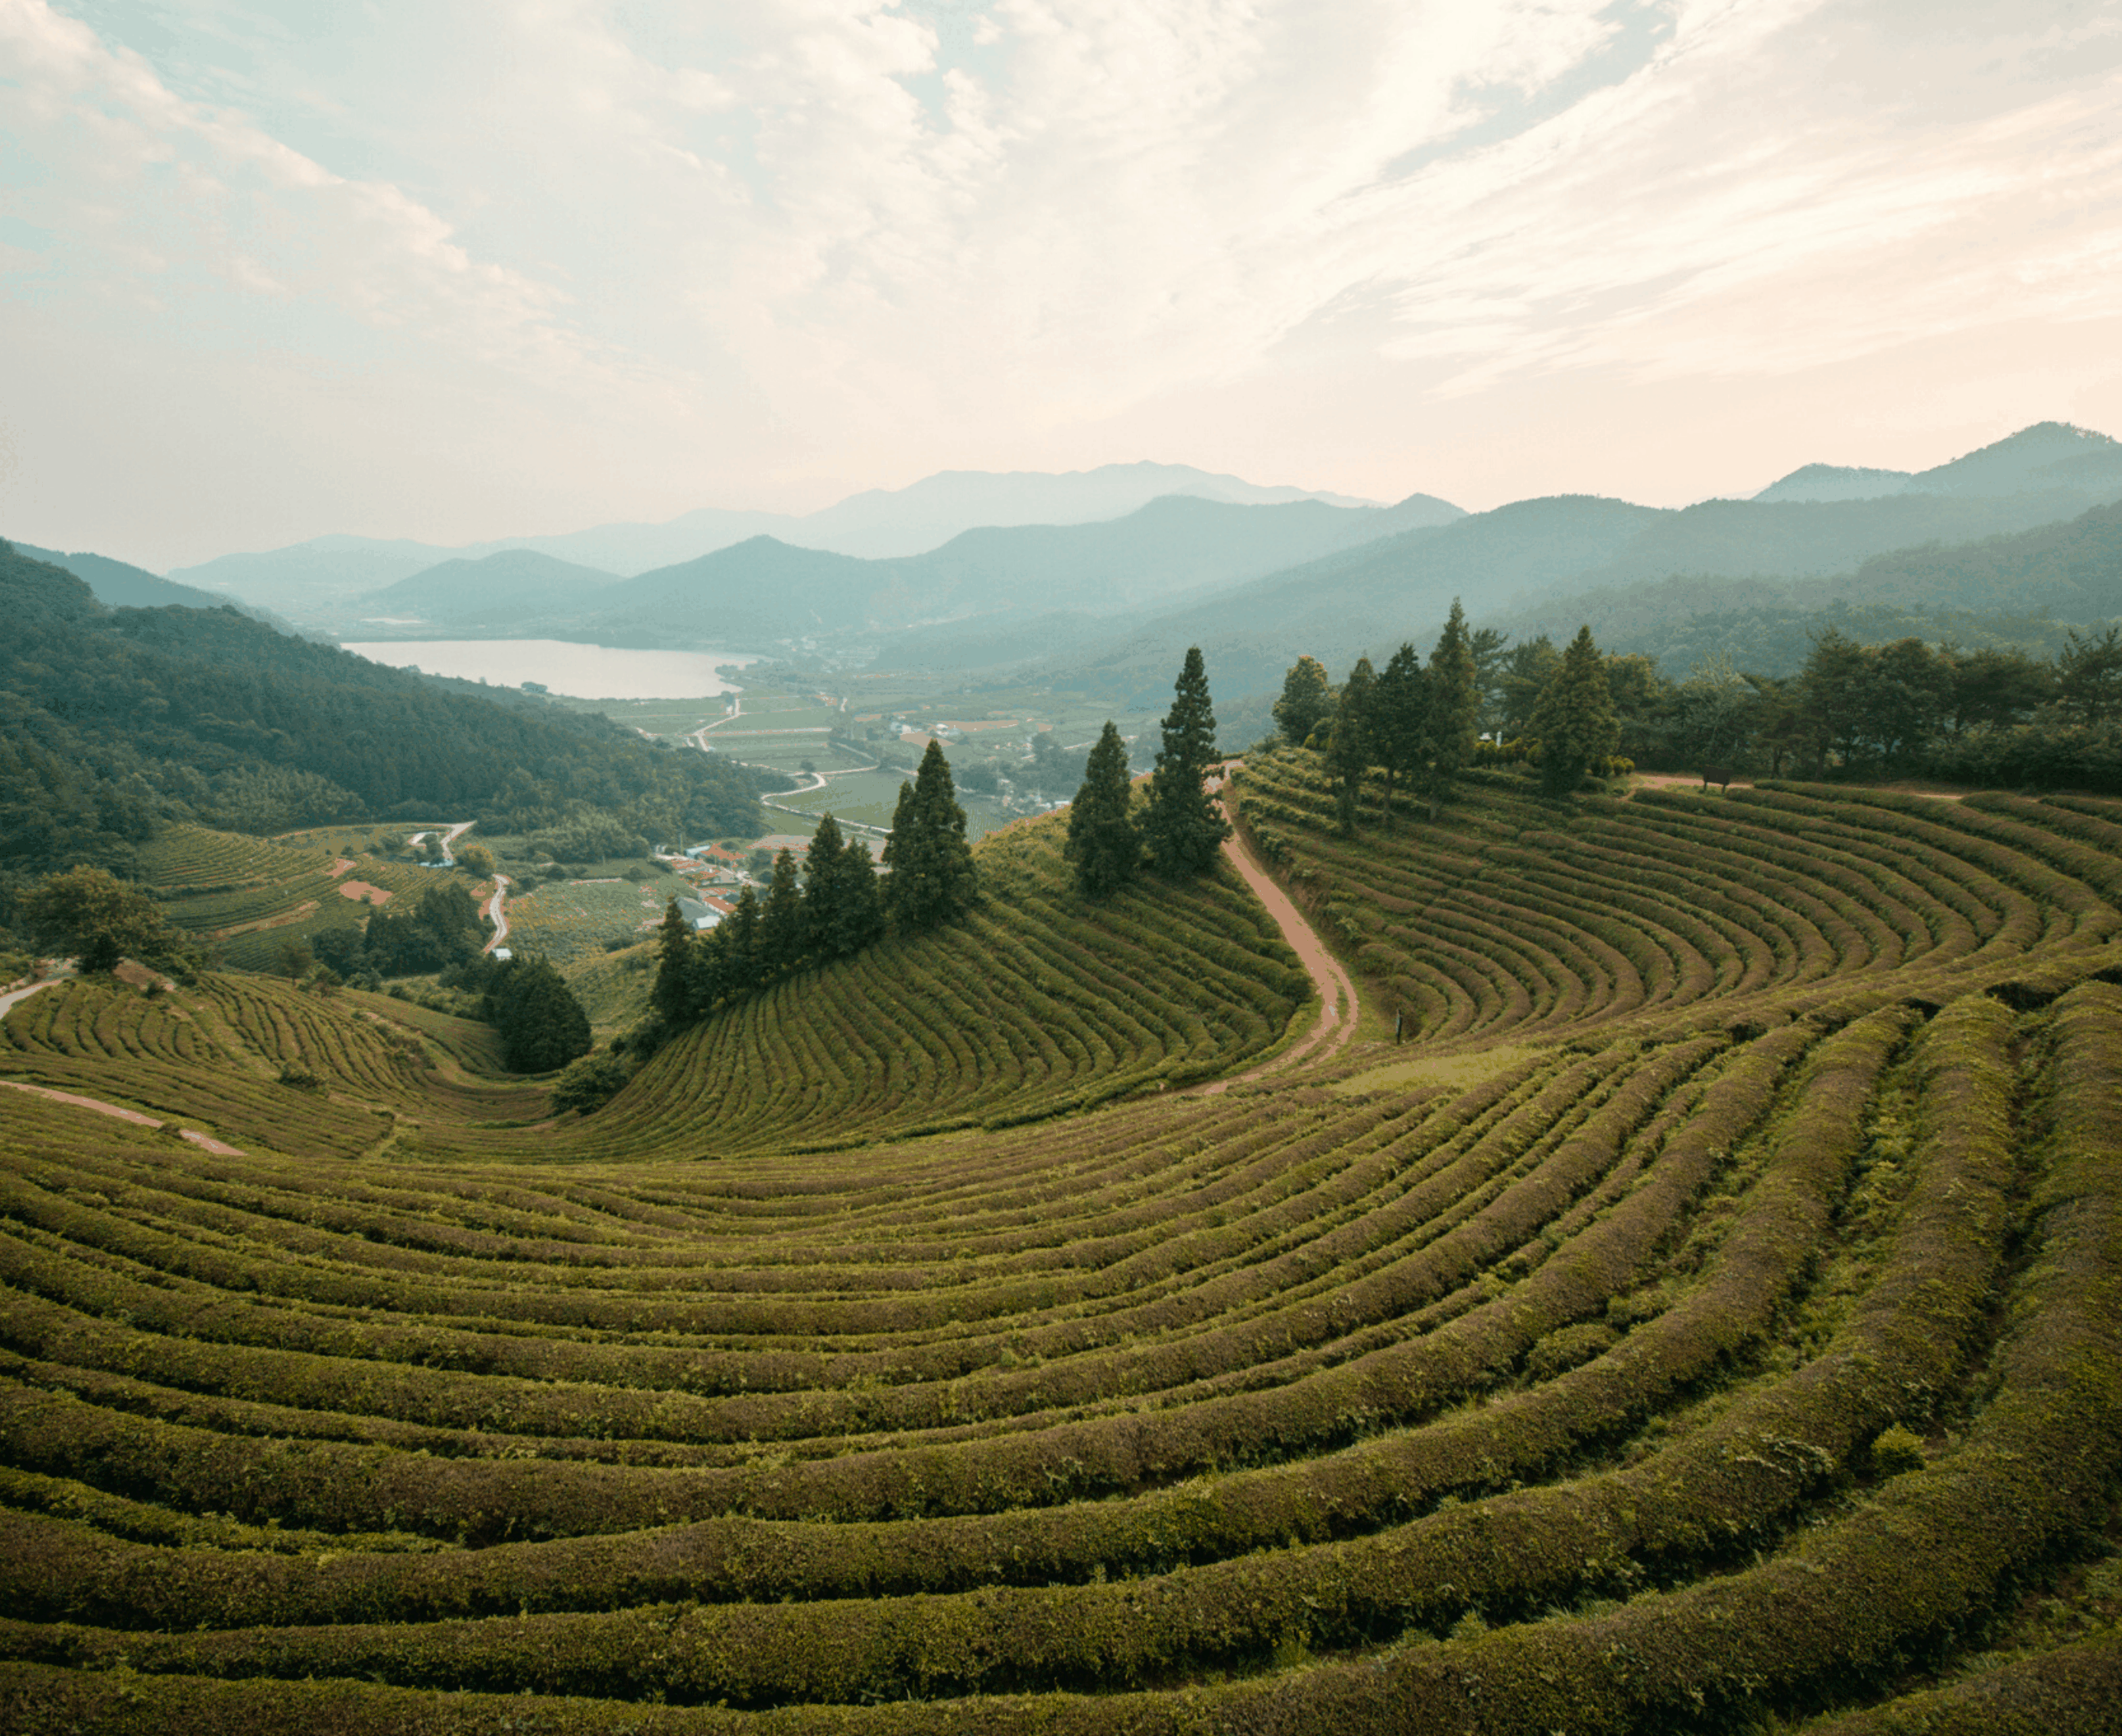 Boseong Green Tea Fields: How and When to Visit